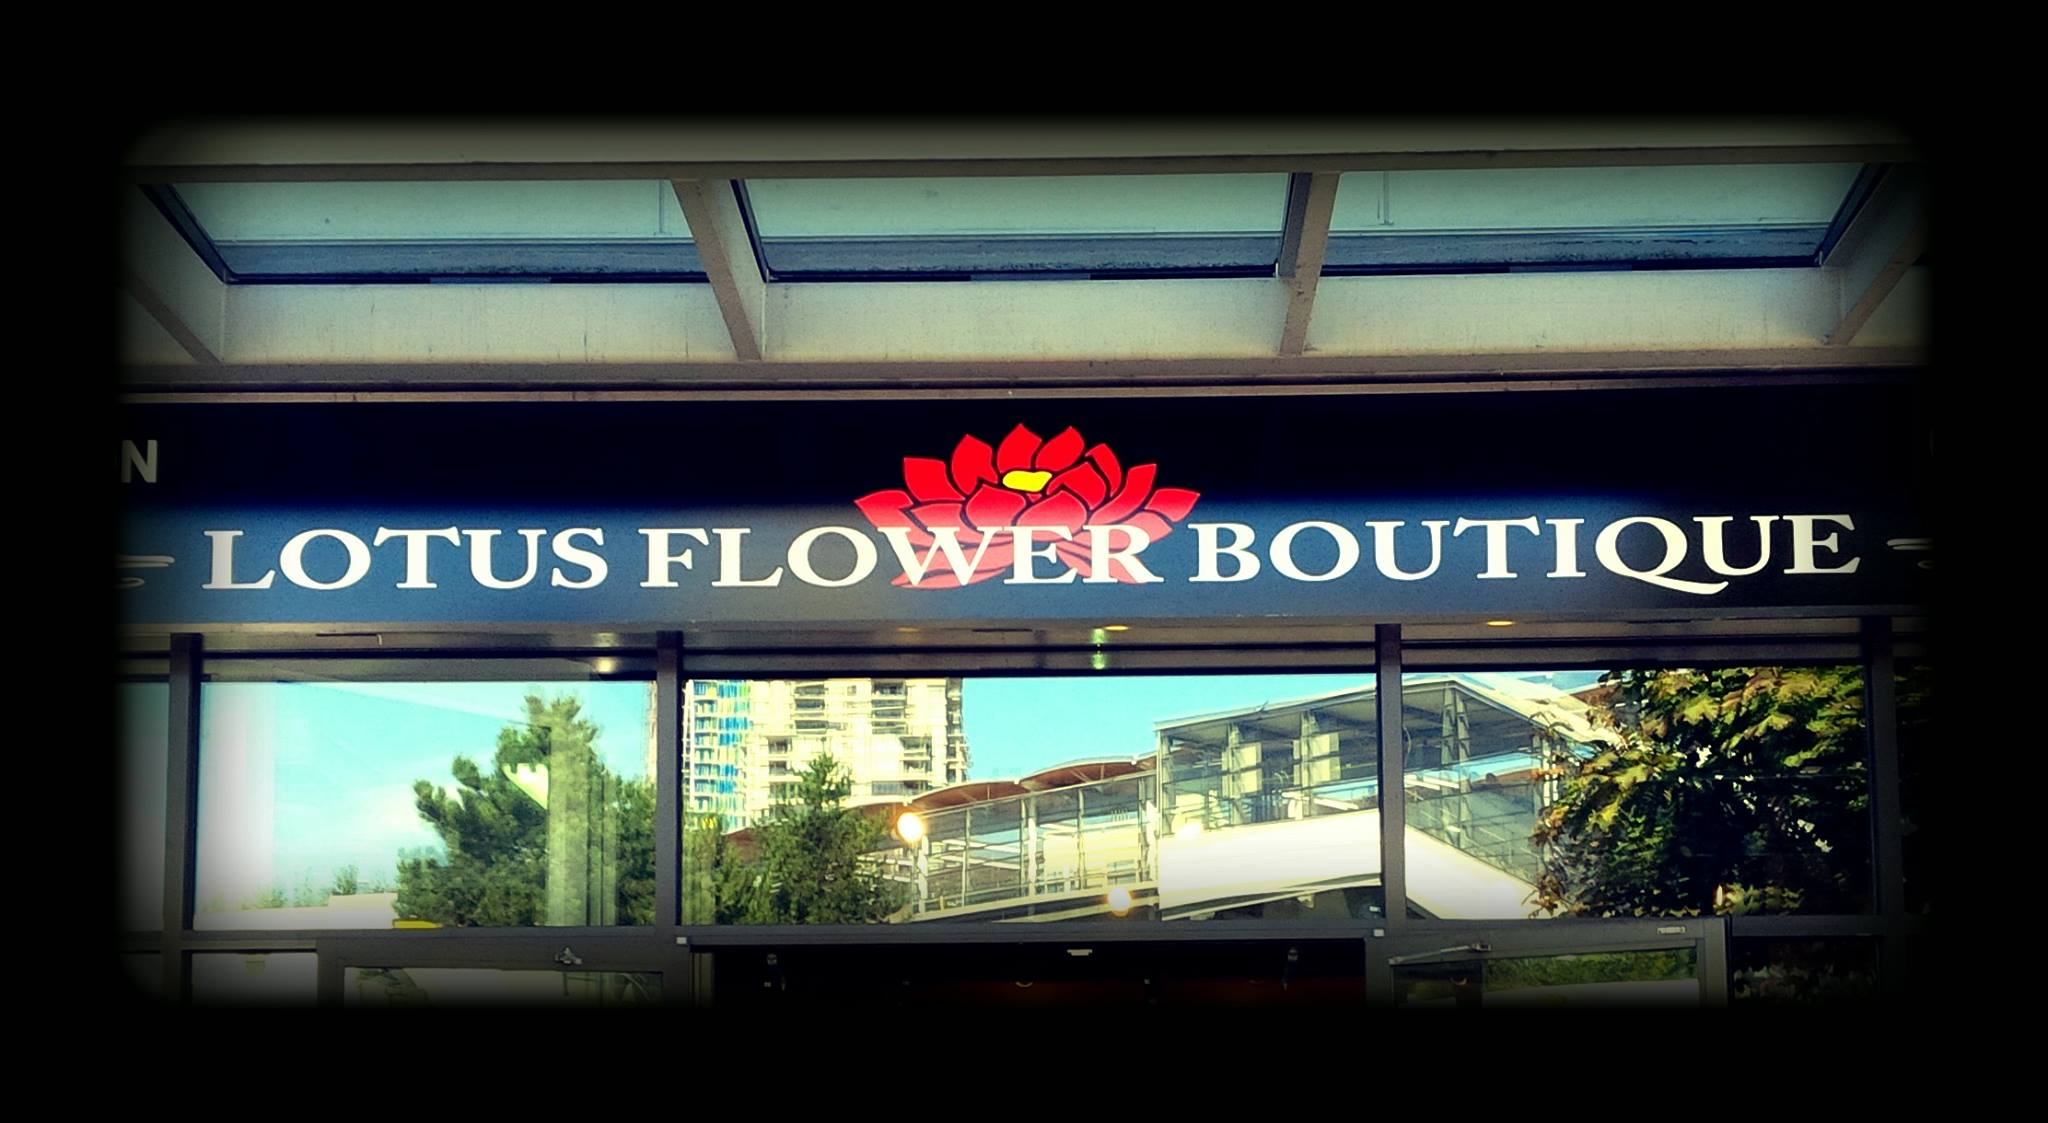 Lotus Flower Boutique